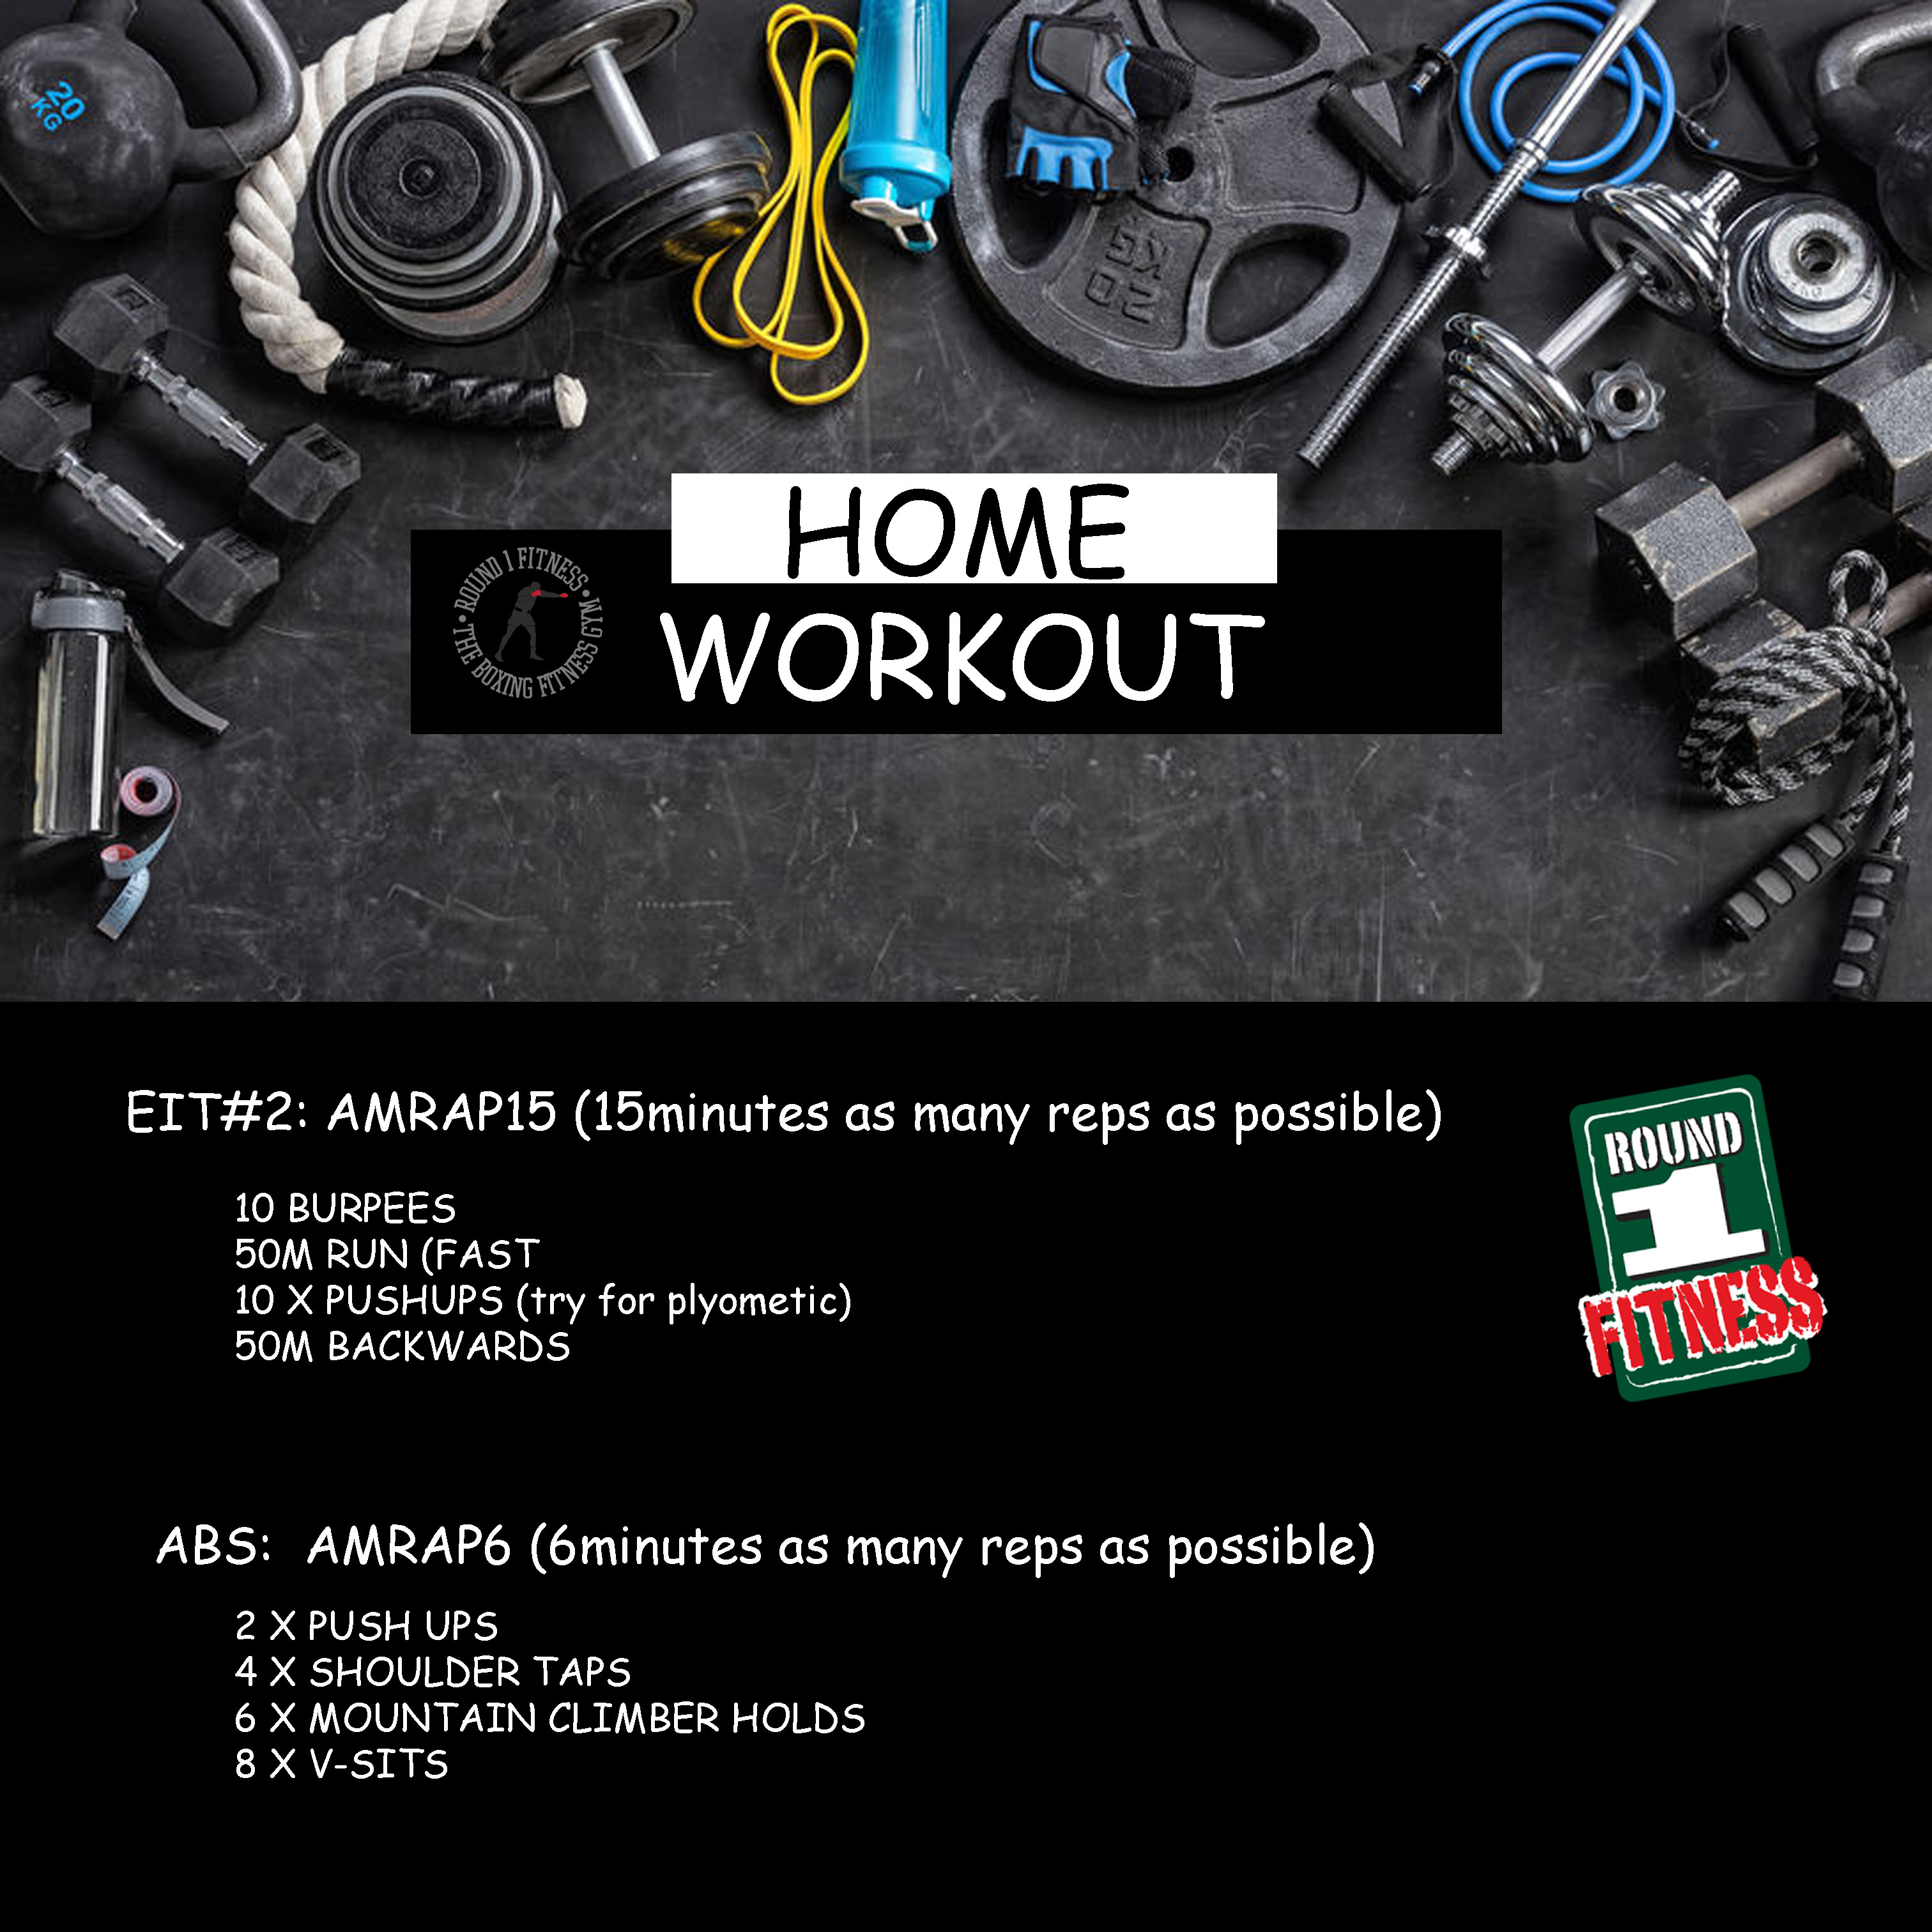 Home Workout:  Wednesday May 13th